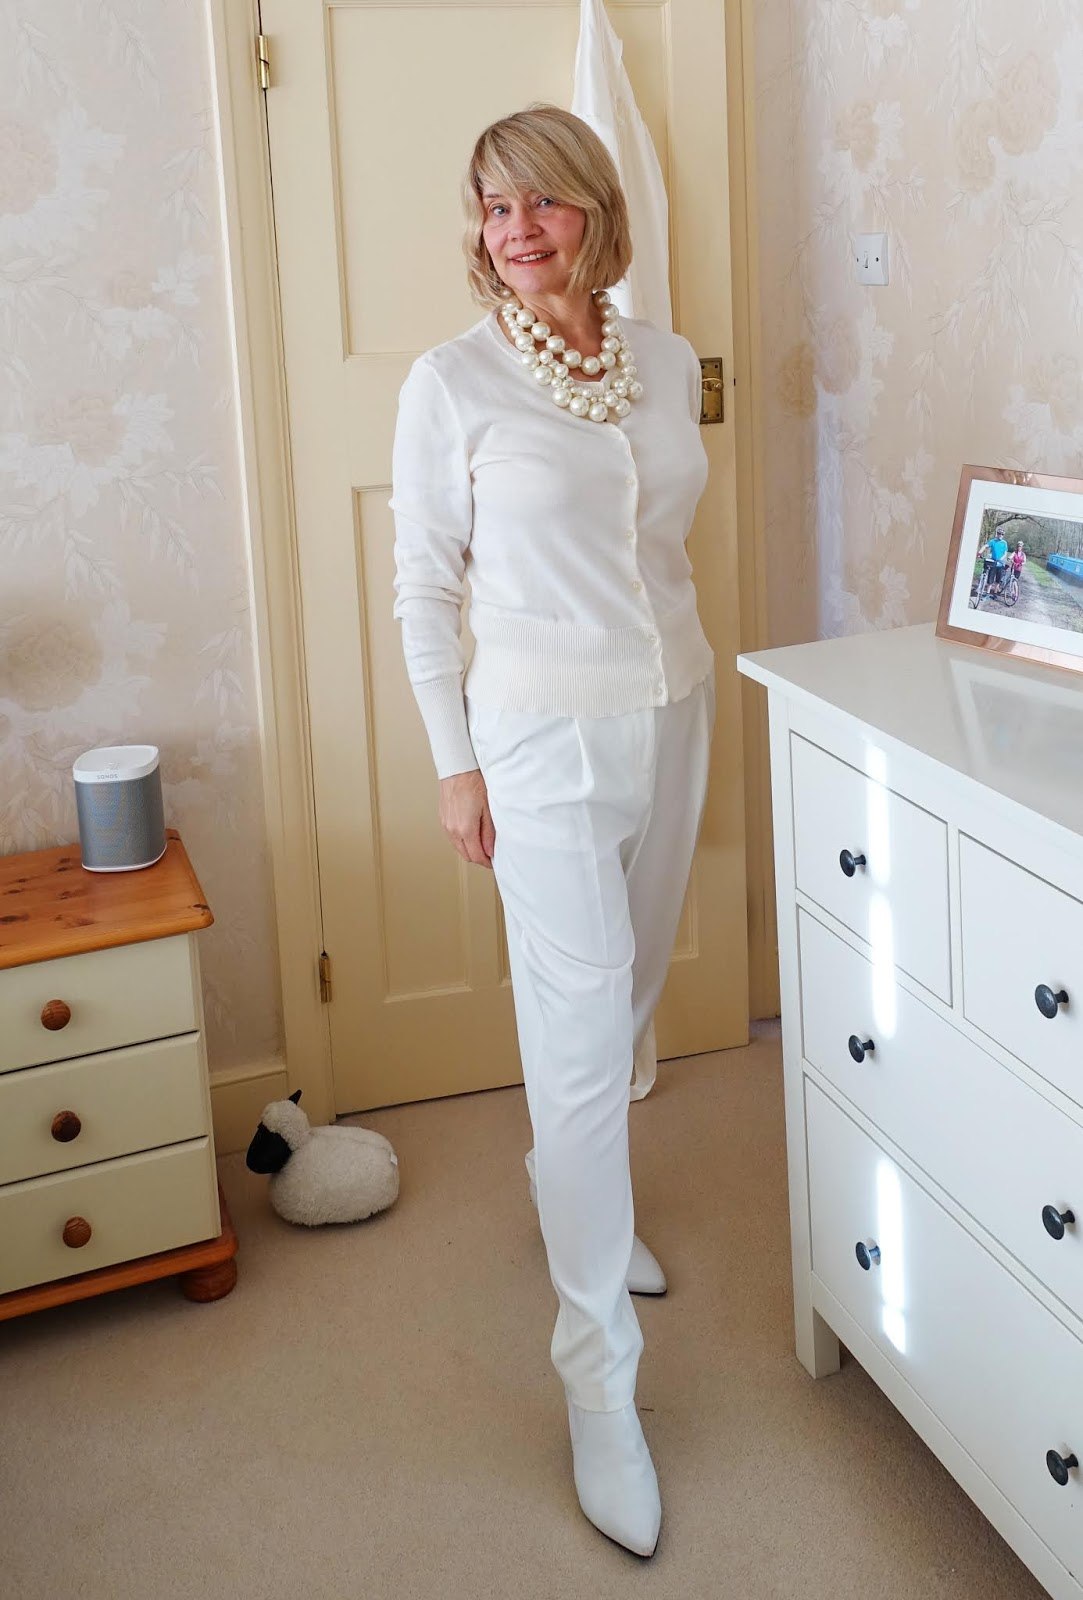 A winter white outfit from head to toe for style blogger Gail Hanlon from over-50s fashion blog Is This Mutton?